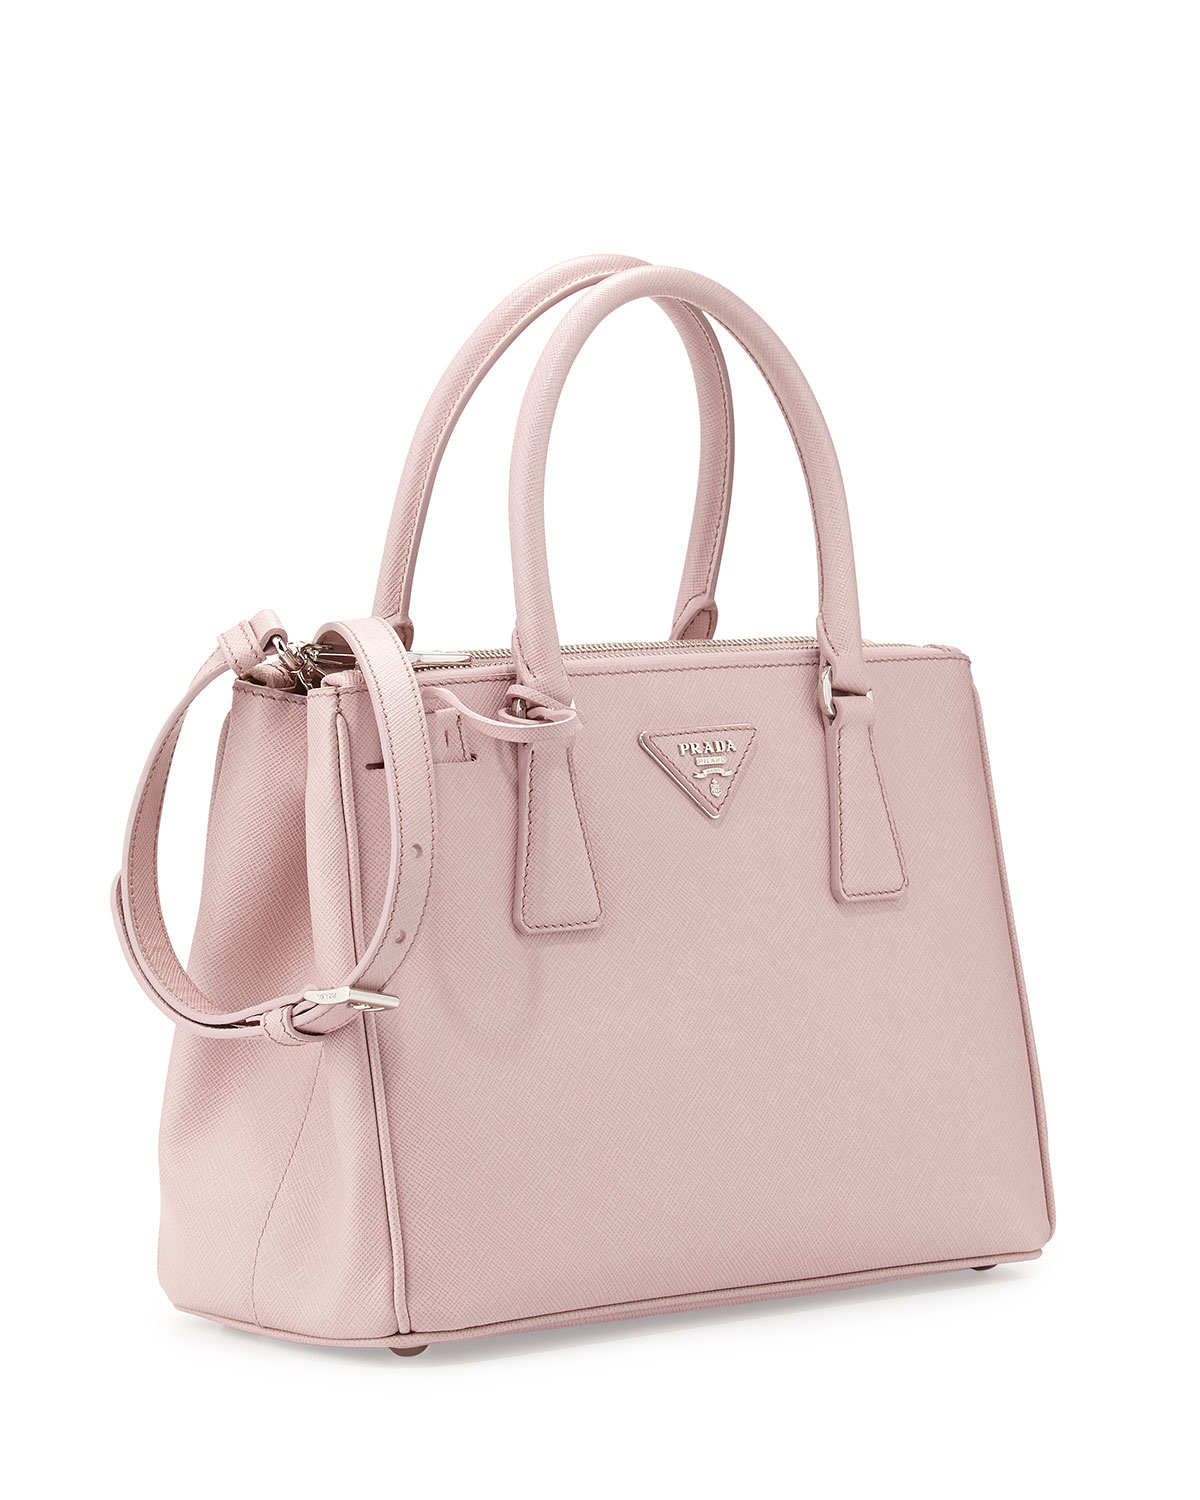 prada saffiano lux double zip tote bag in pink light pink lyst. Black Bedroom Furniture Sets. Home Design Ideas